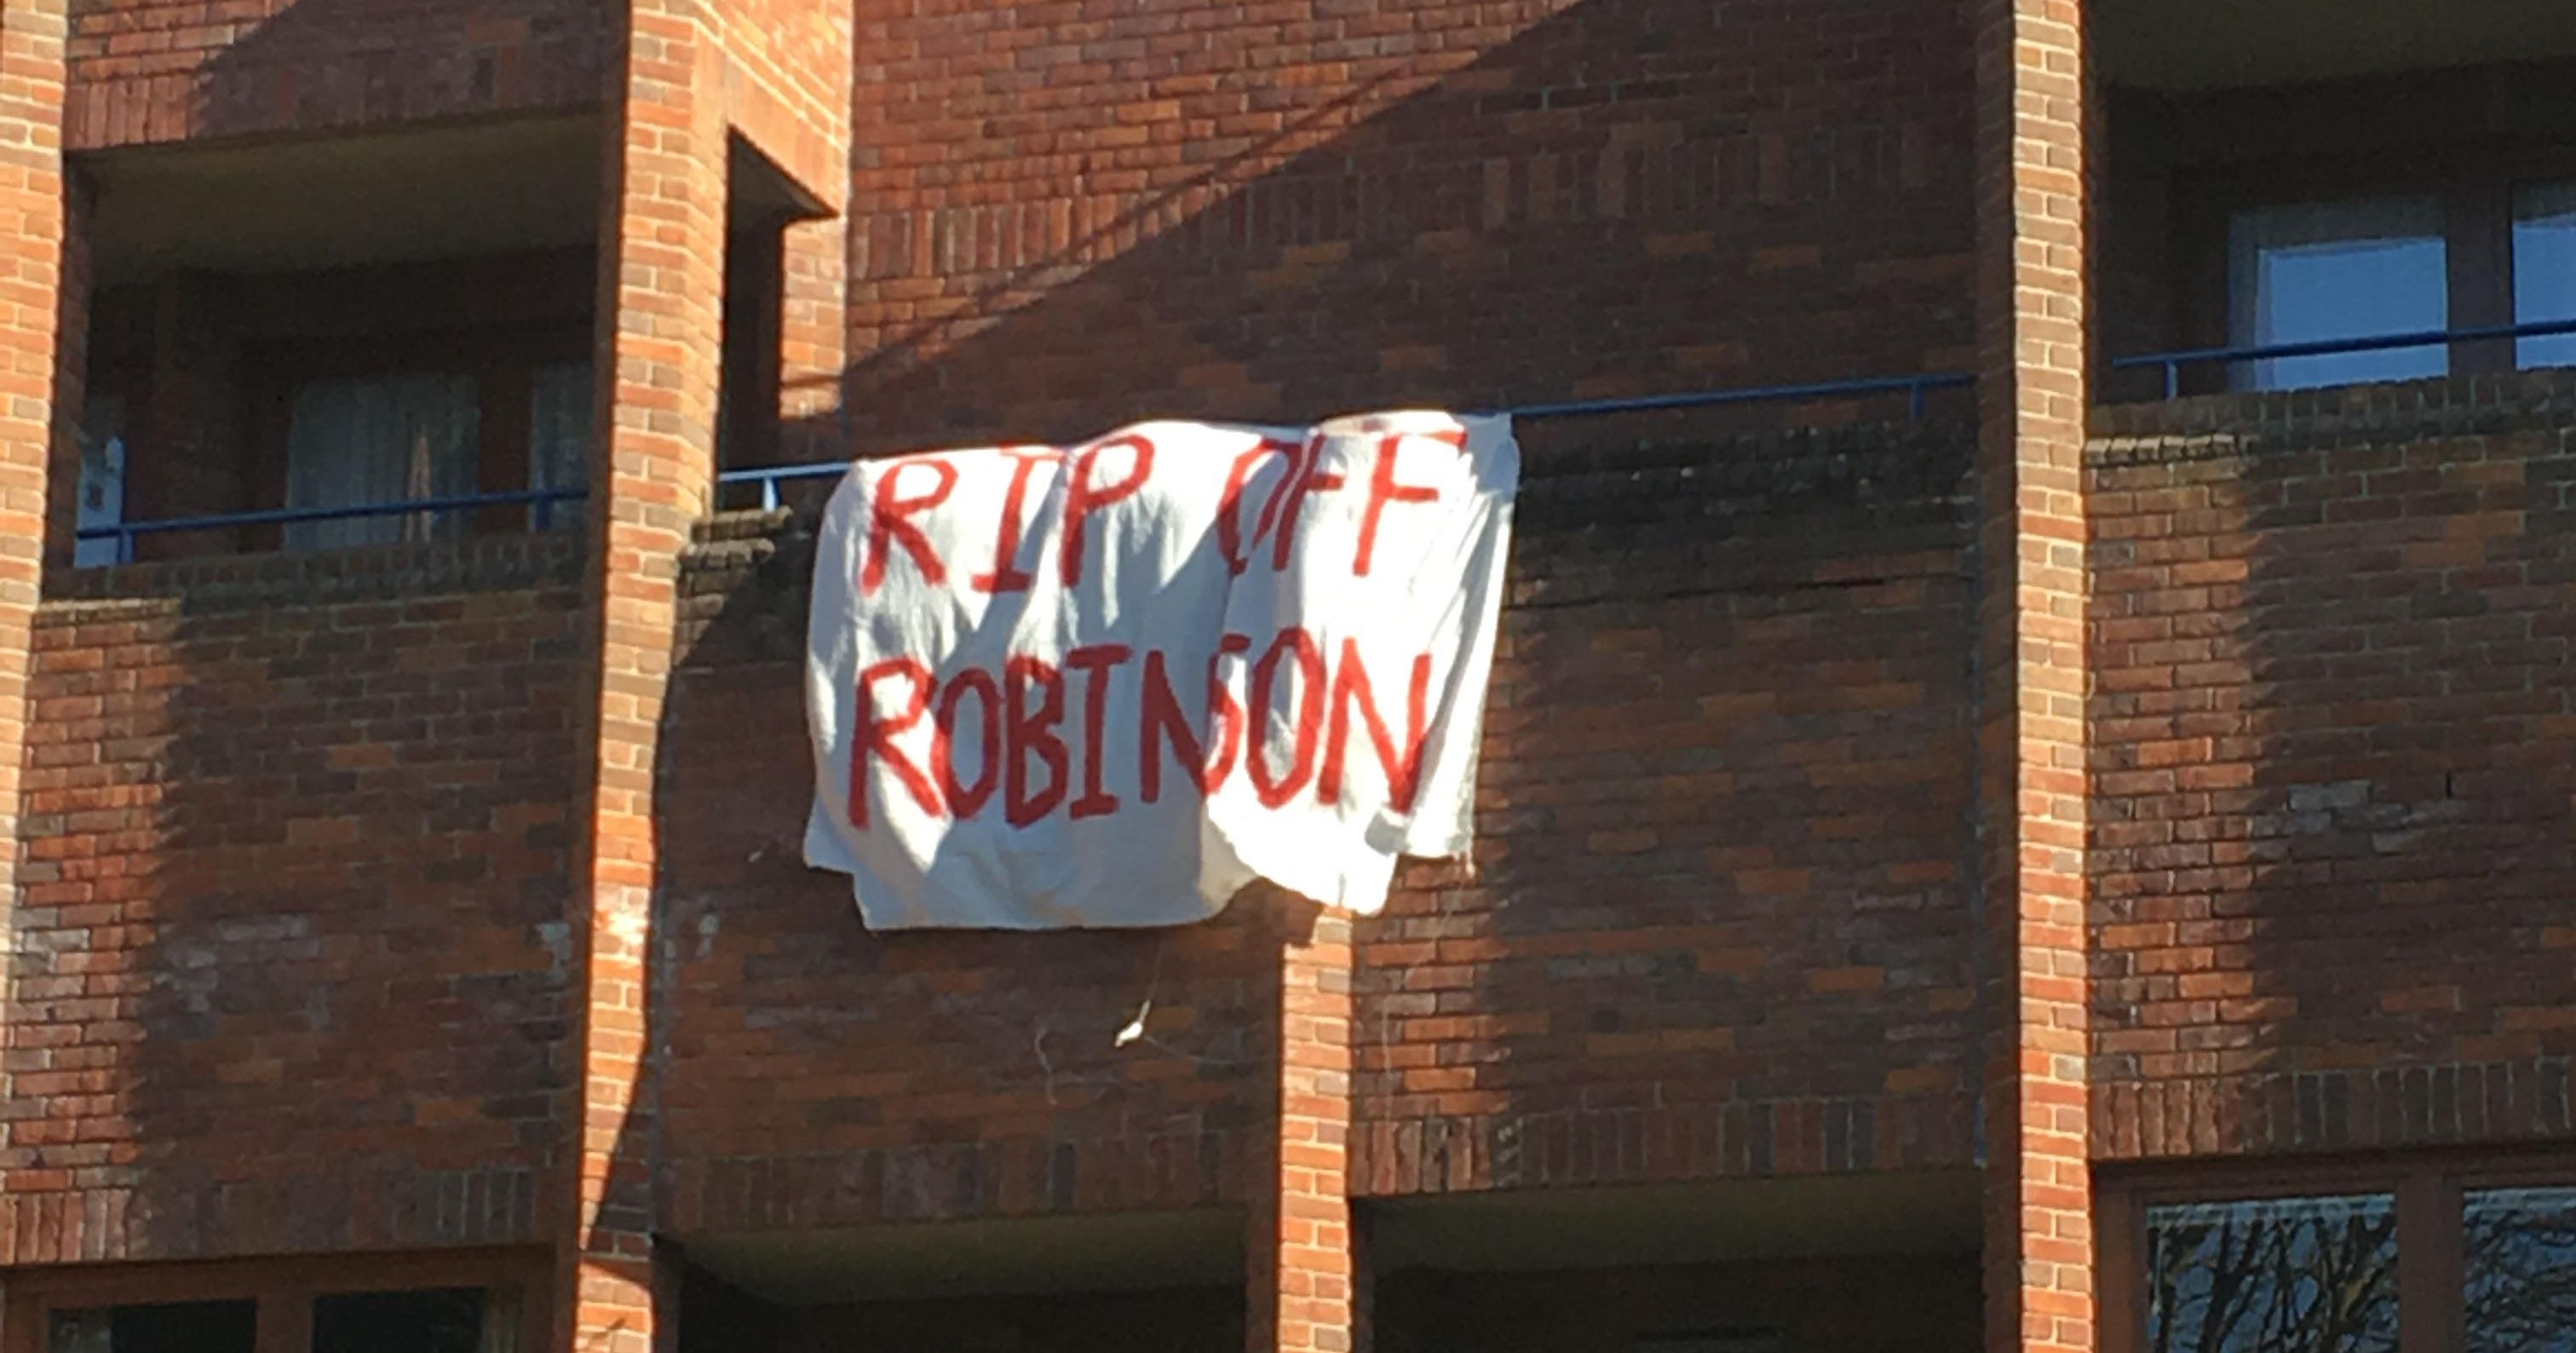 Robinson Rent Banners Broadcast Student Concerns